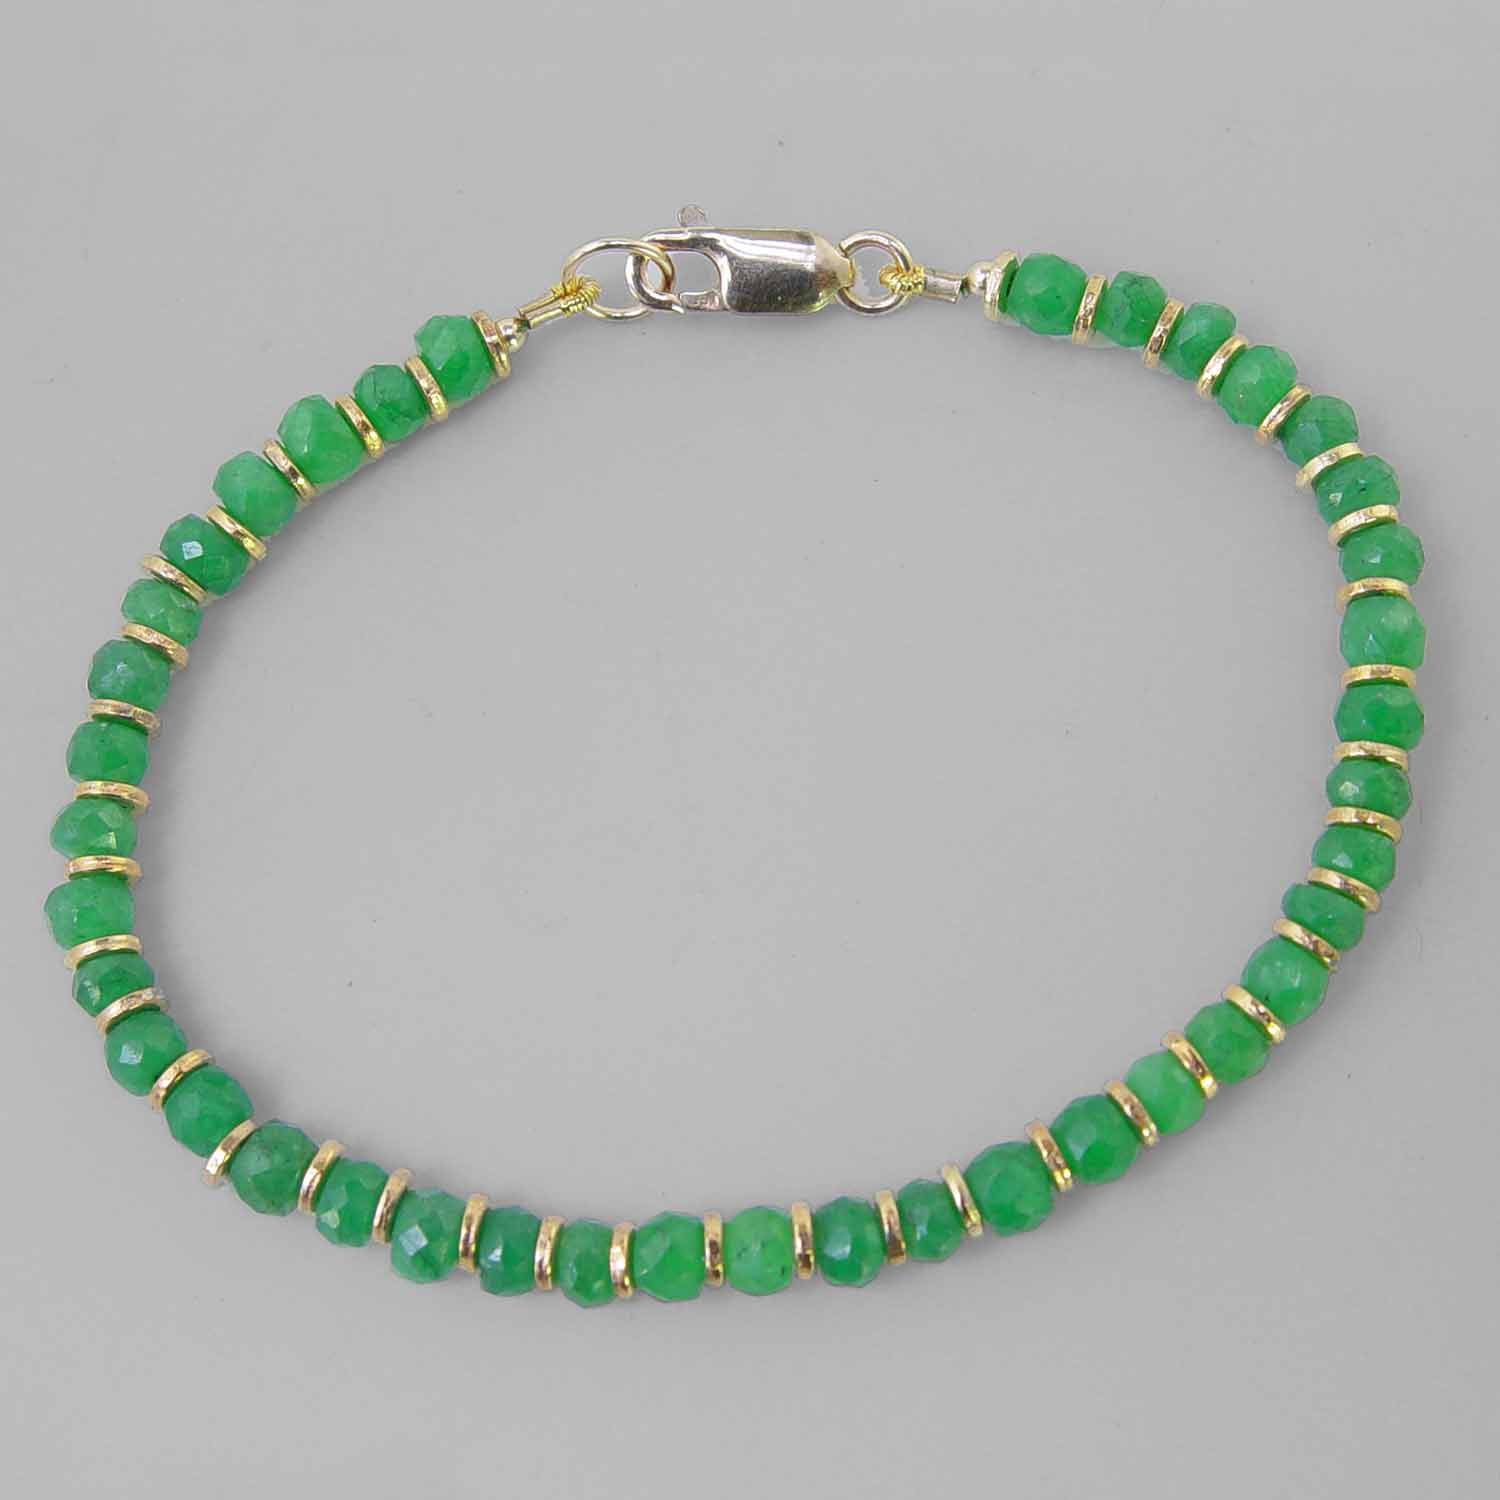 Emerald Faceted Rondelle With Gold Accents Bracelet - 25 CTW